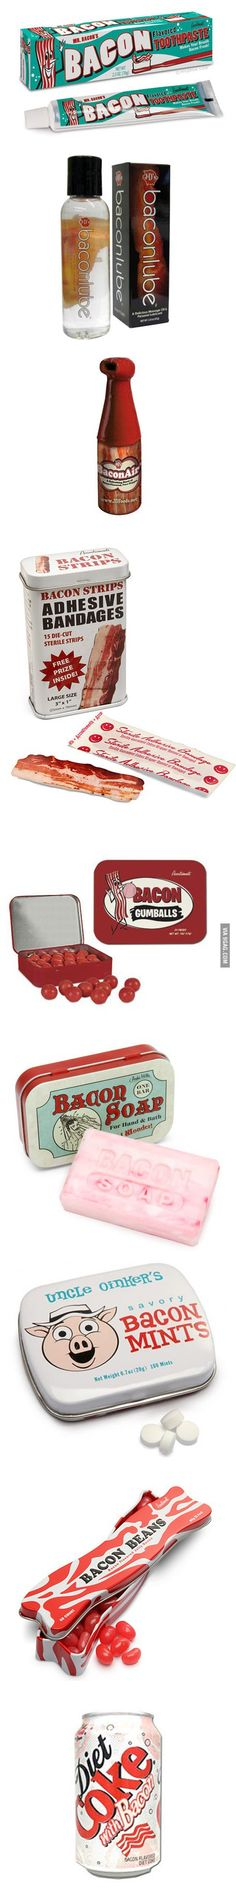 Interesting bacon products.